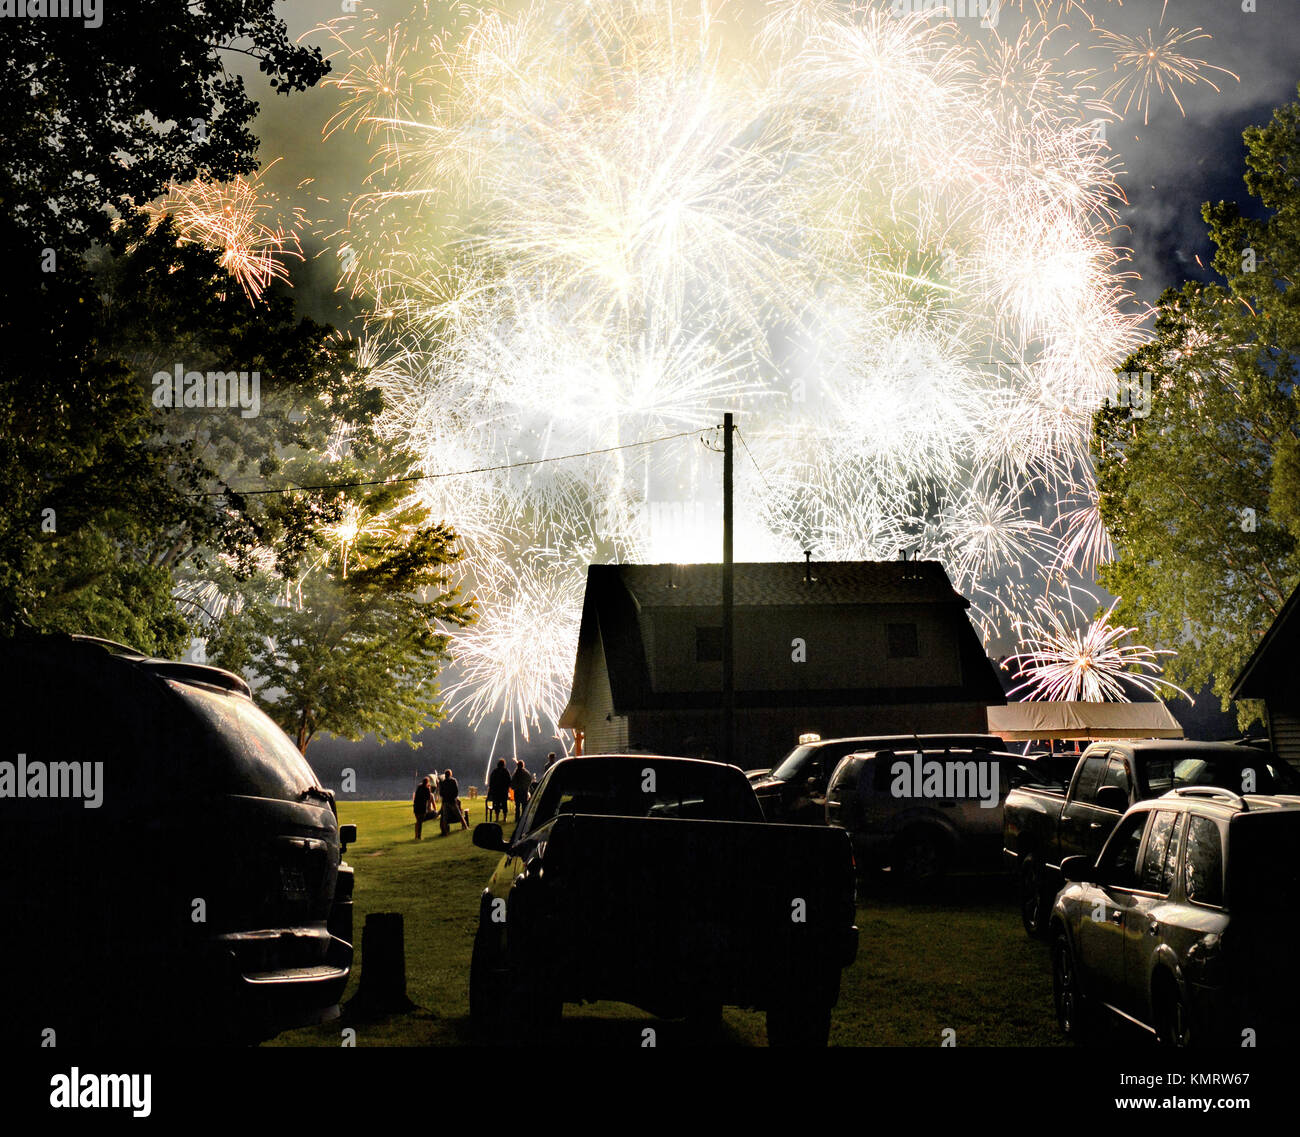 Photograph of fireworks filling the sky with brilliant explosions and smoke at a neighborhood Fourth of July party. - Stock Image